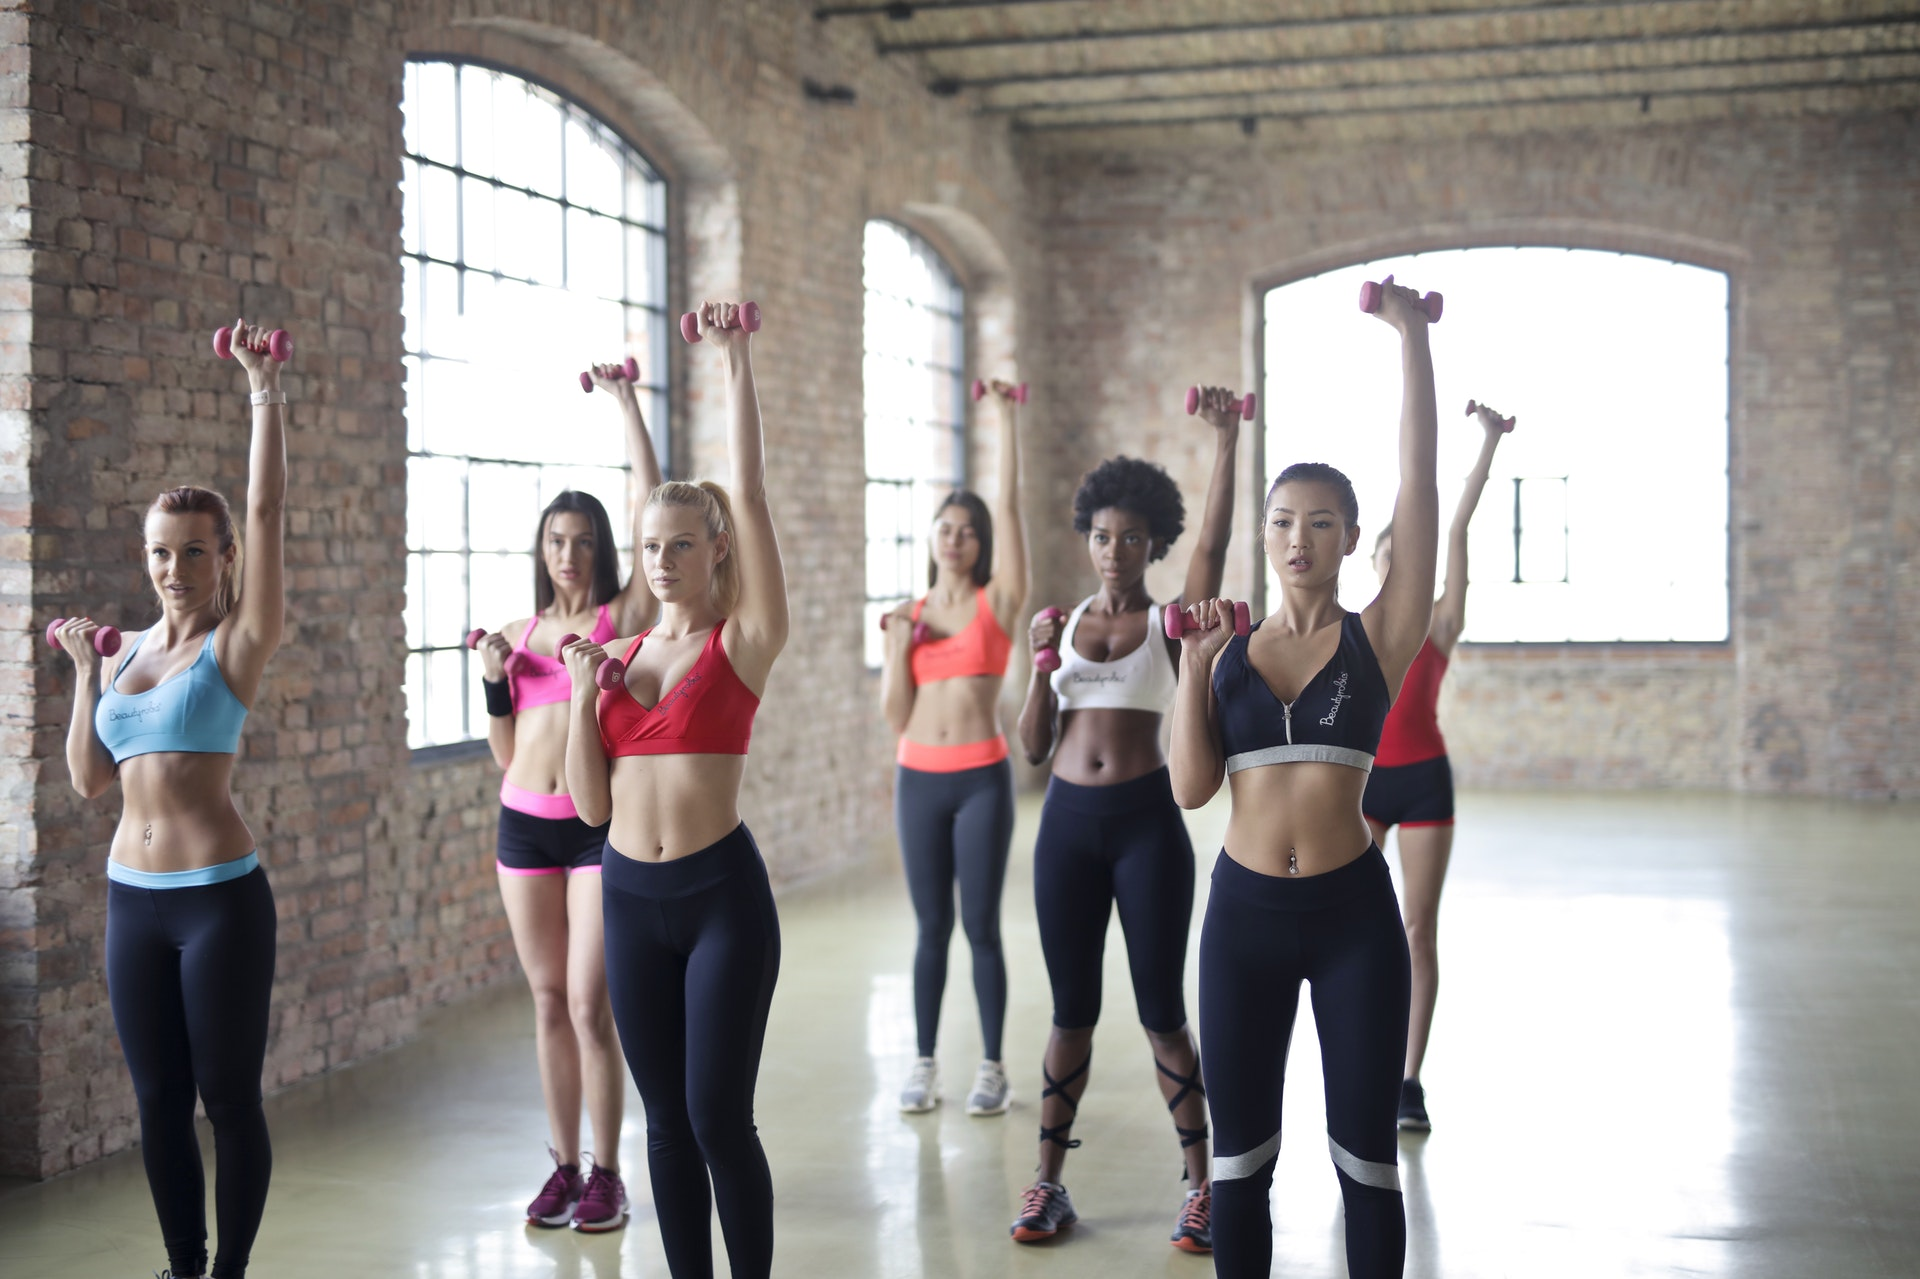 6 Ways To Look Stylish While Working Out